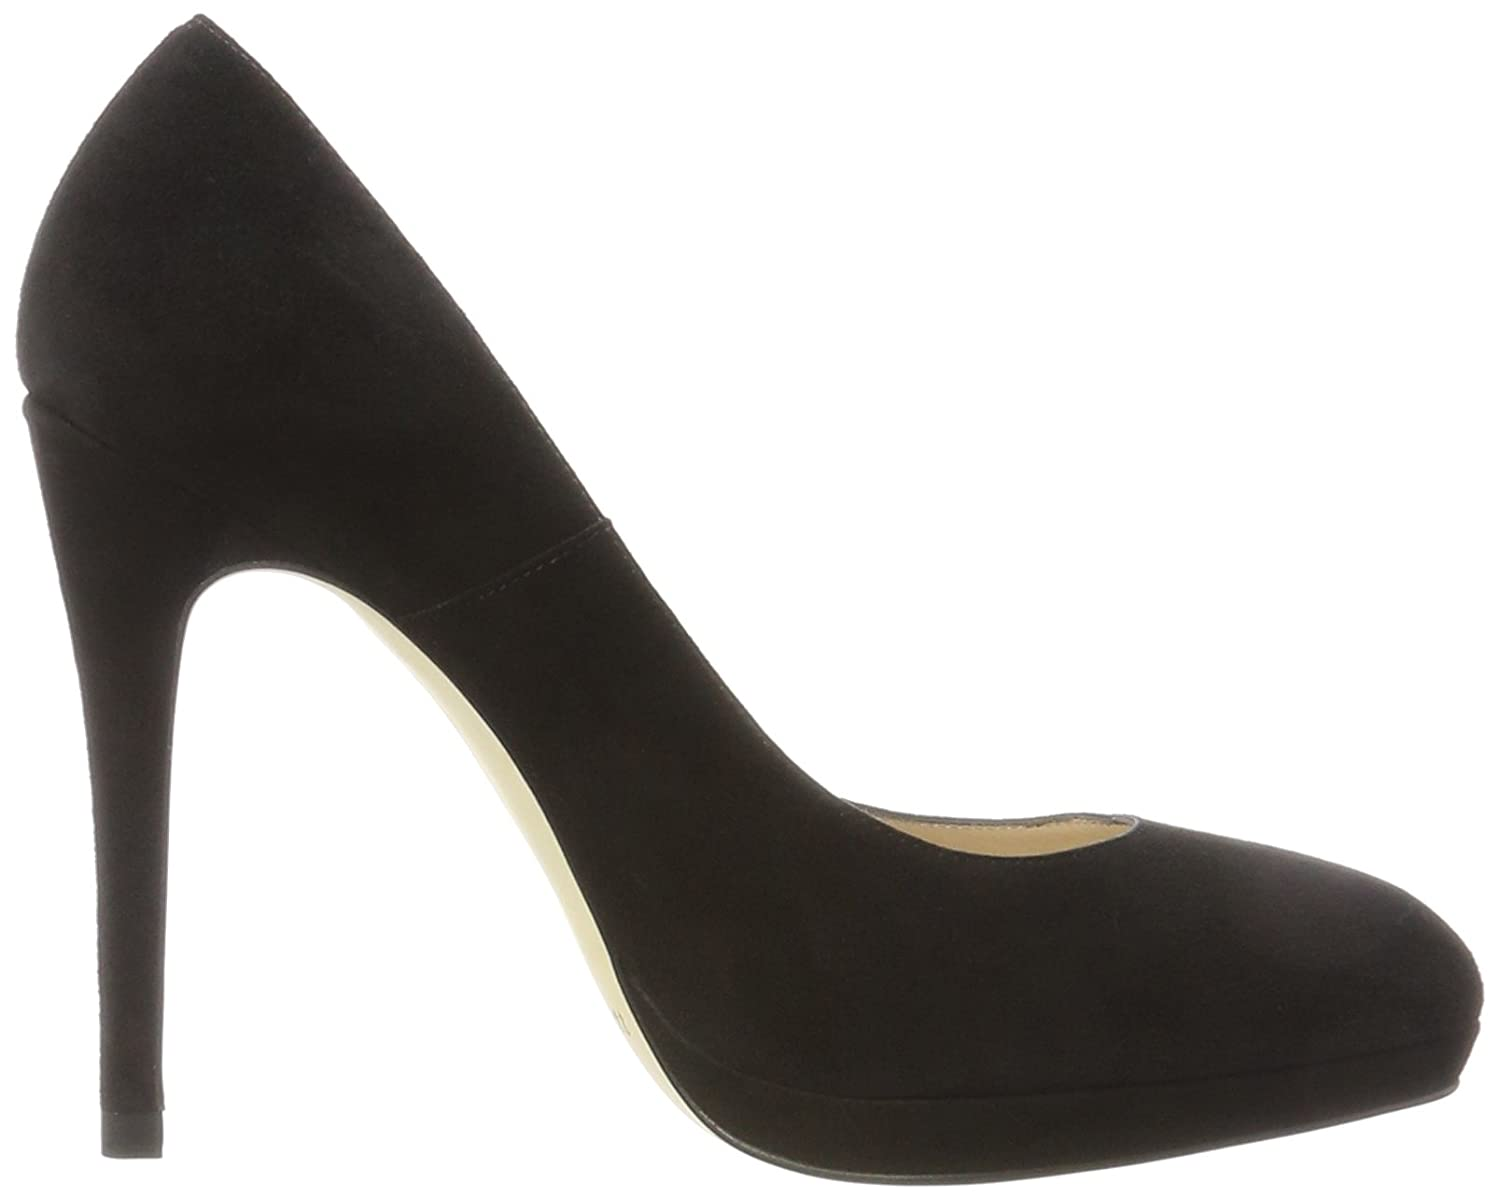 LK BENNETT Damen New Sledge Plateaupumps: Amazon.de: Schuhe & Handtaschen